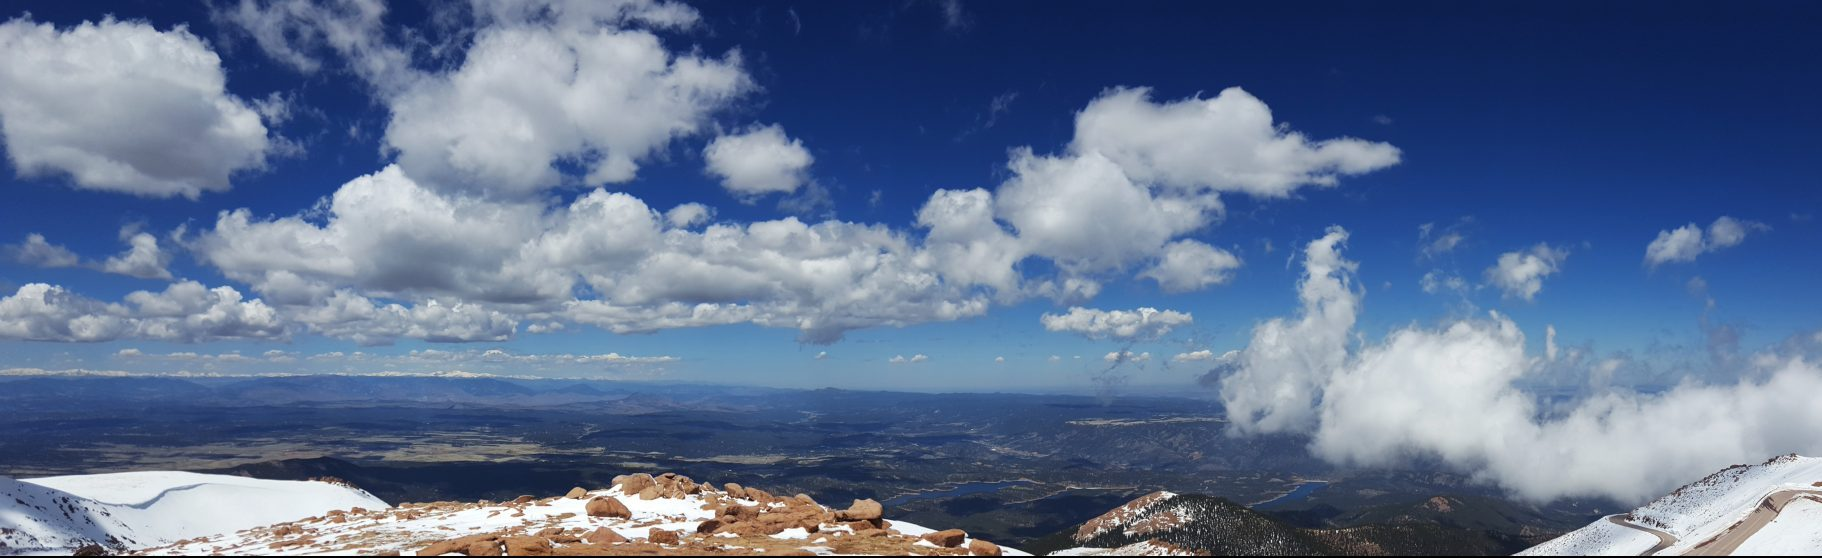 Driving to the Top of Pikes Peak